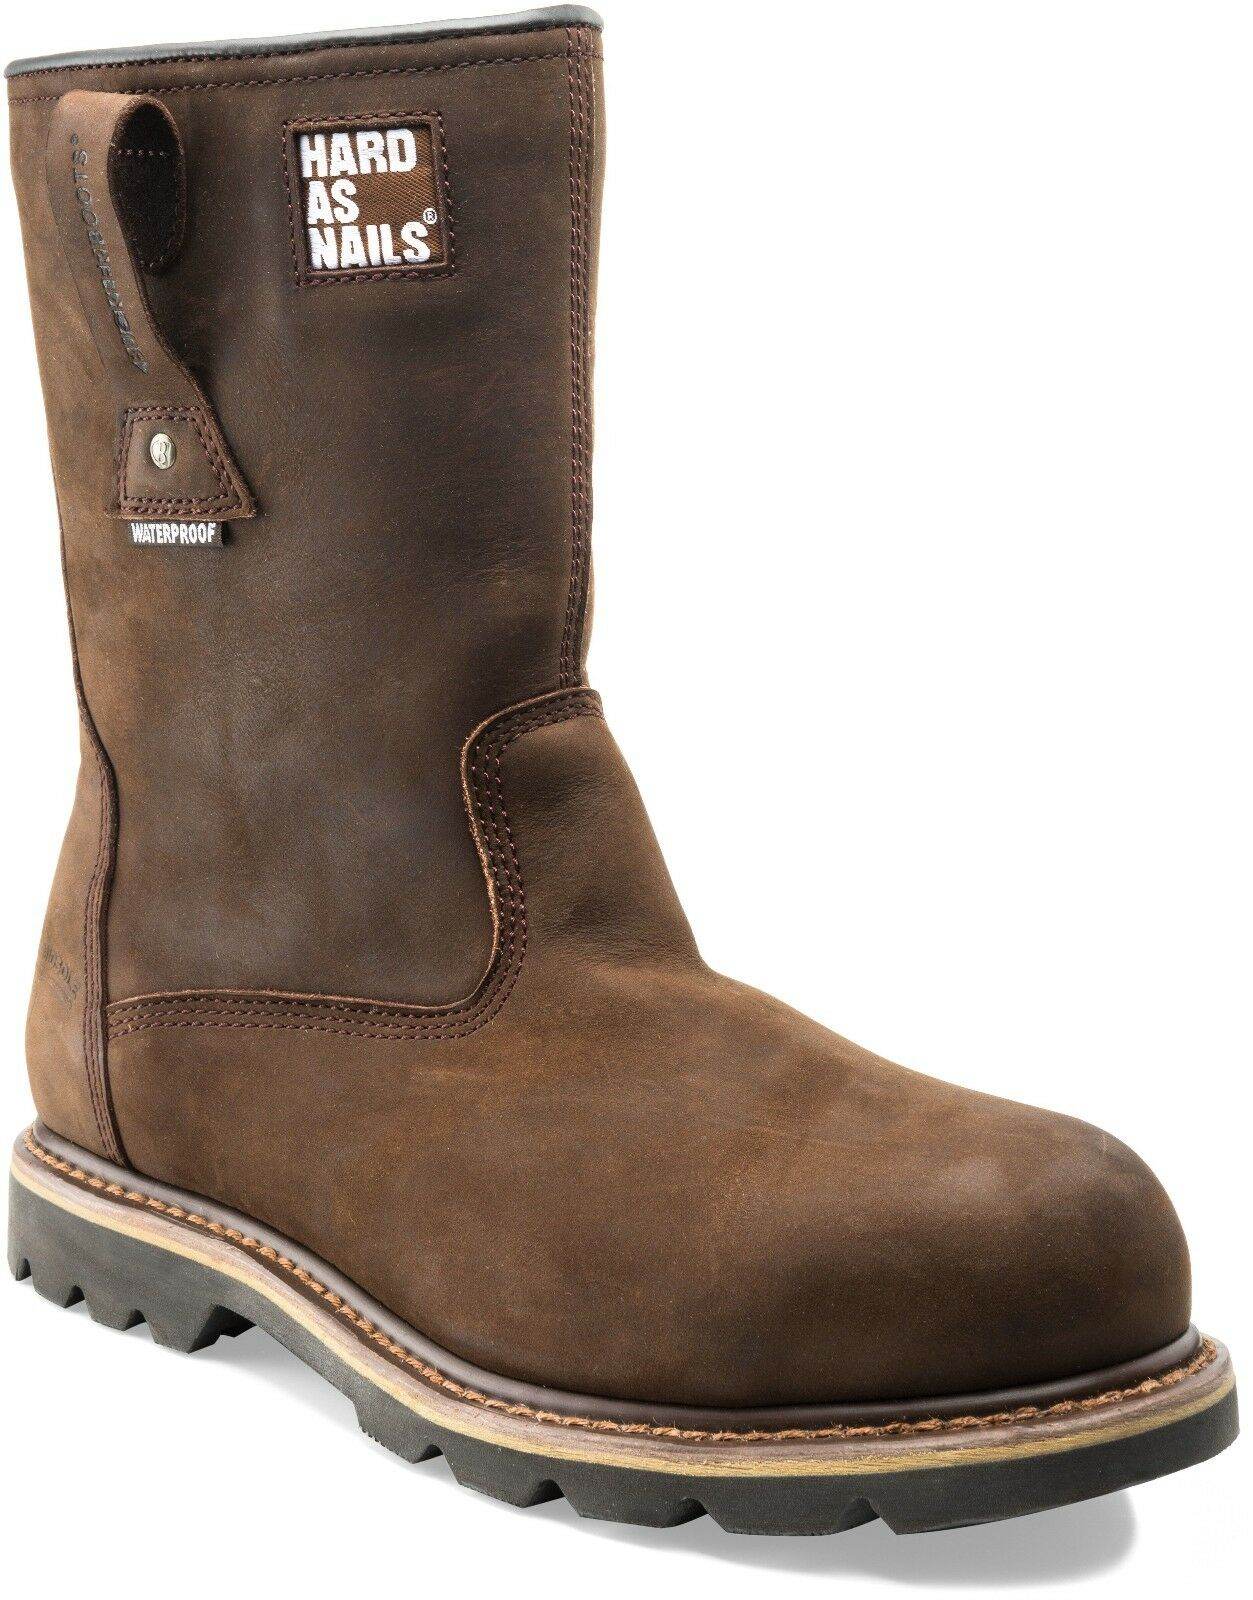 Buckler B601SMWP Boots Waterproof Safety Rigger Work Boots B601SMWP Brown Leather (Sizes 6-13) 438836